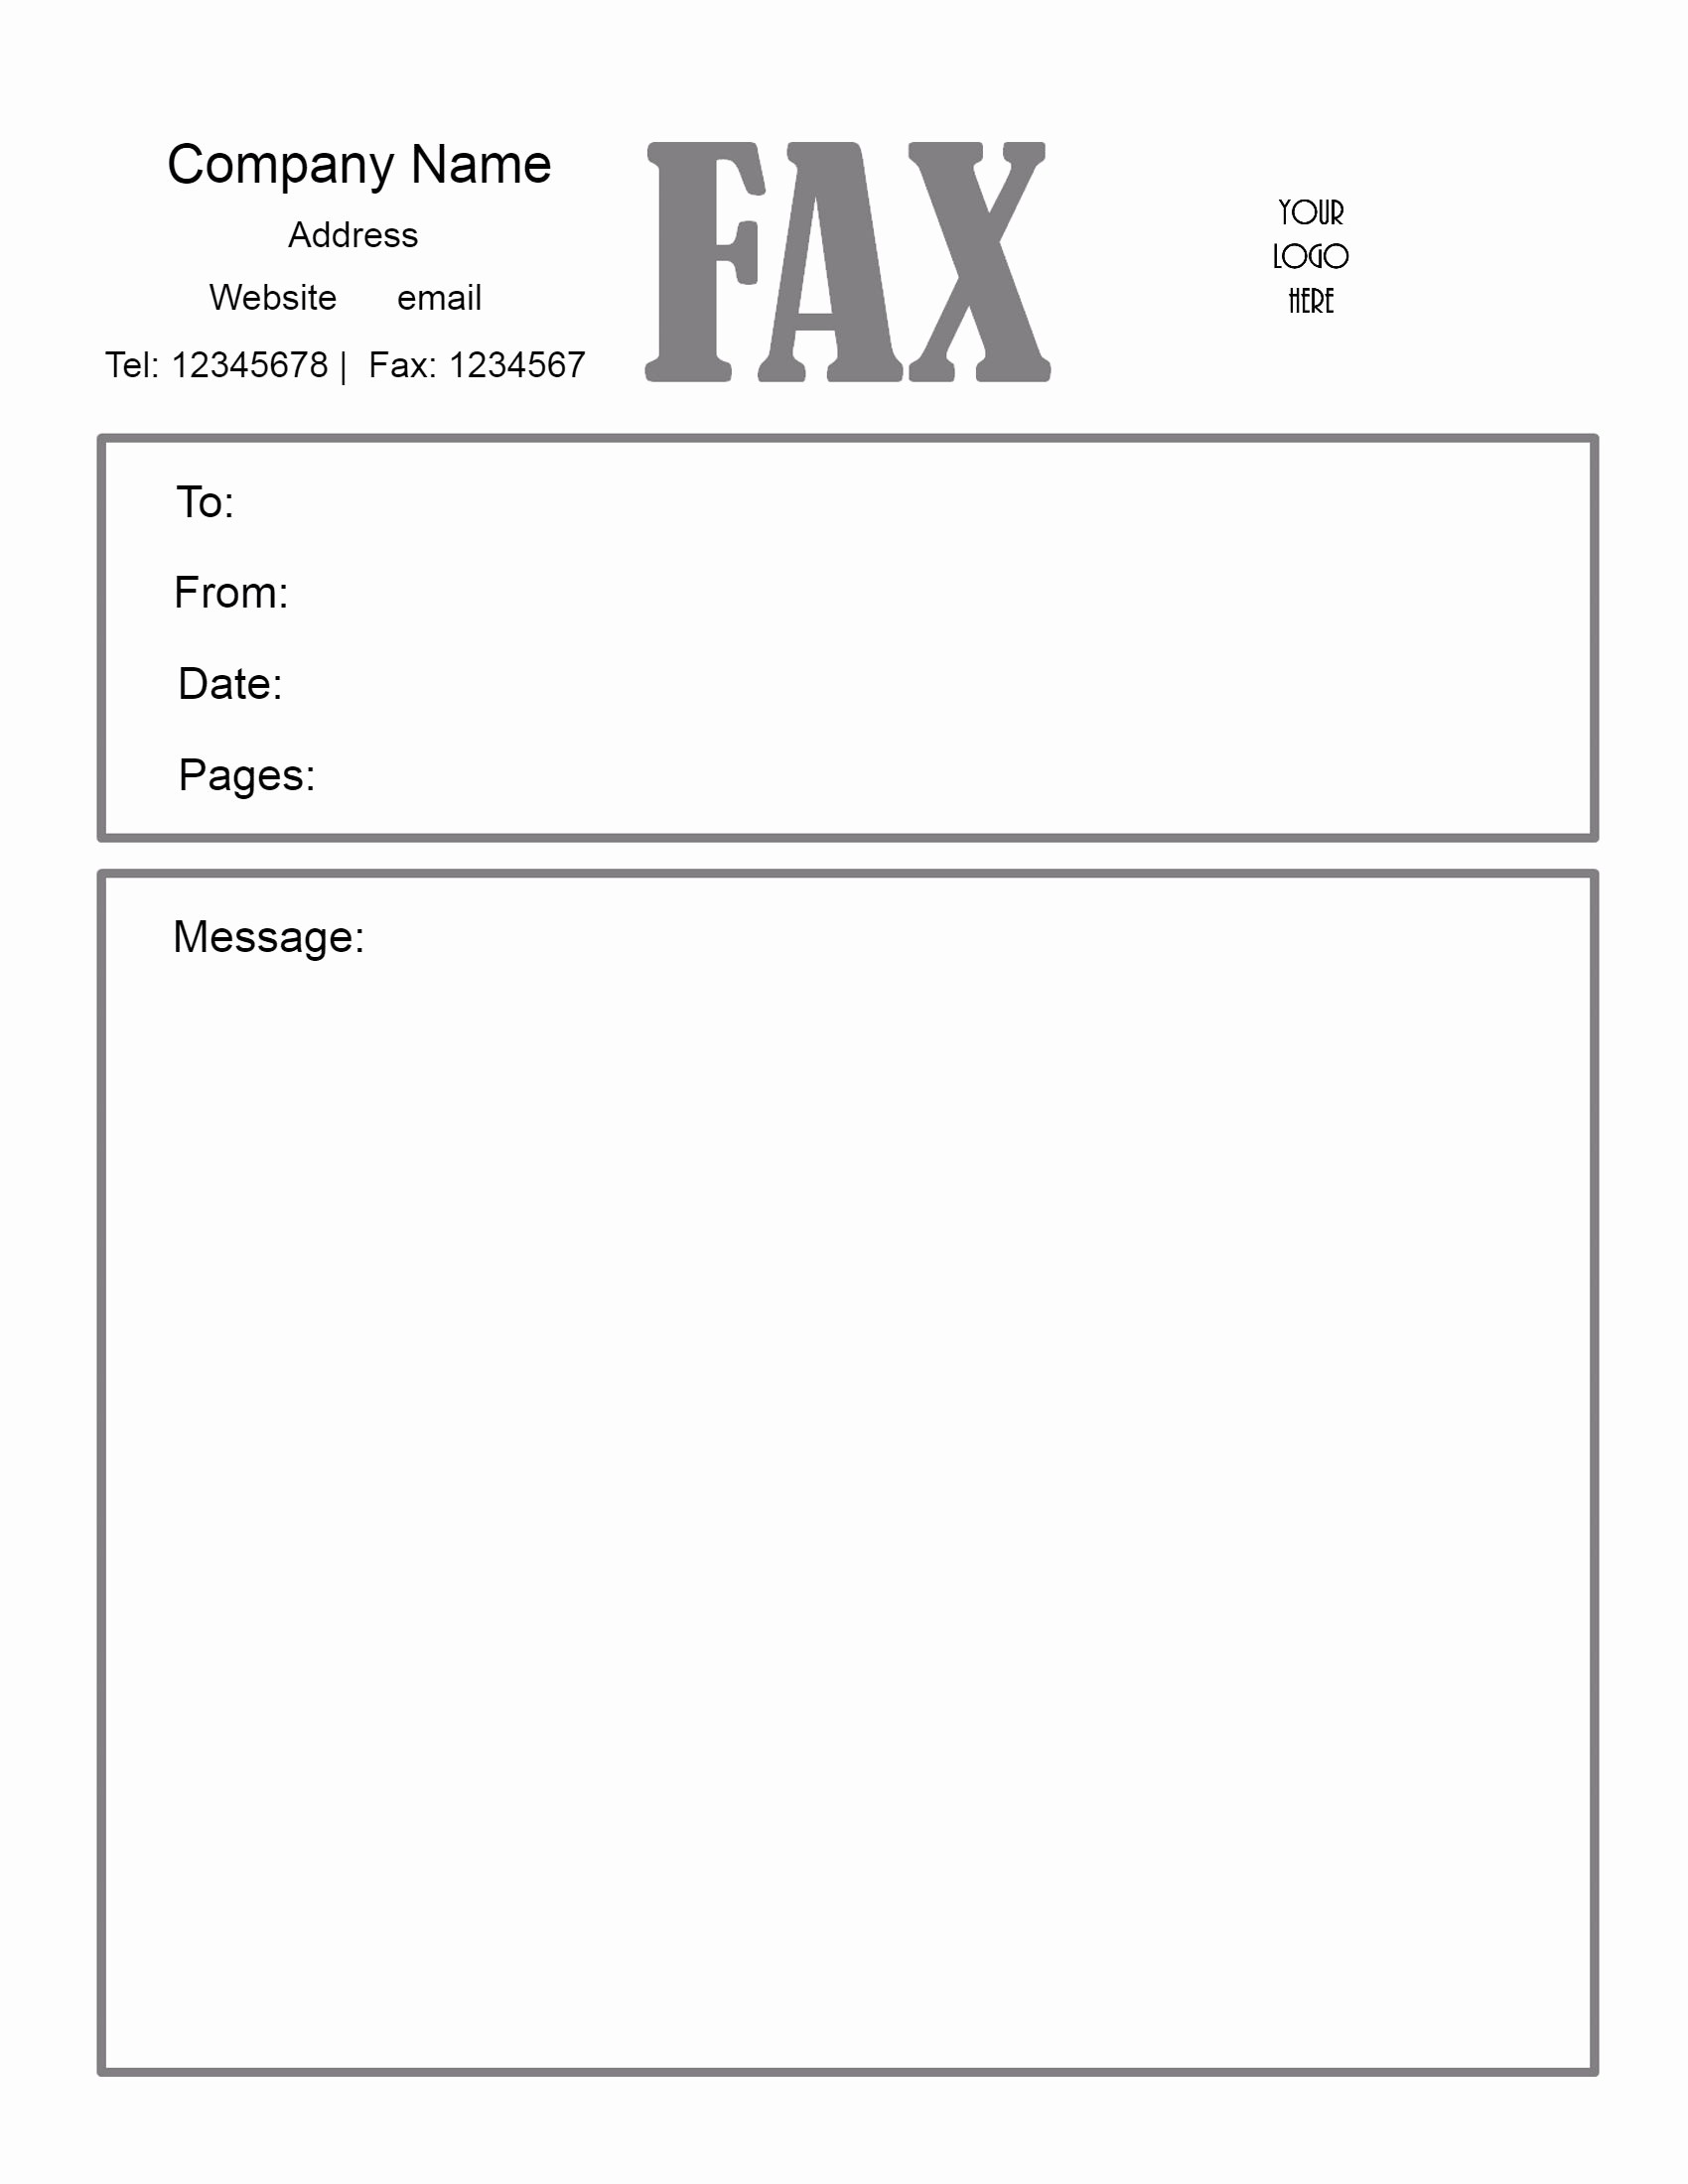 Free Fax Cover Sheets Template Beautiful Free Fax Cover Letter Template